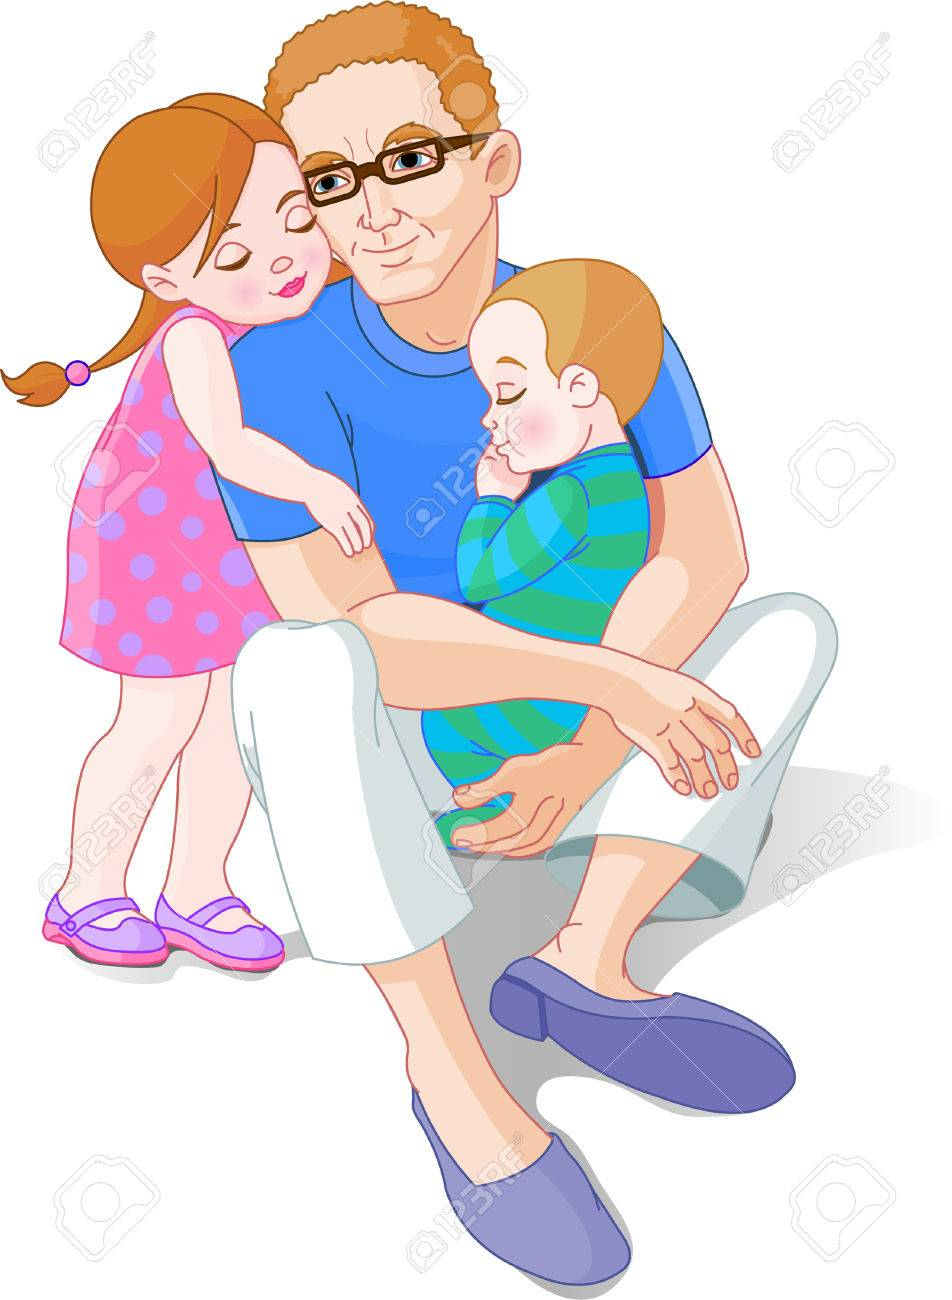 Family scene of Father with his little girl and baby Stock Vector - 6951094